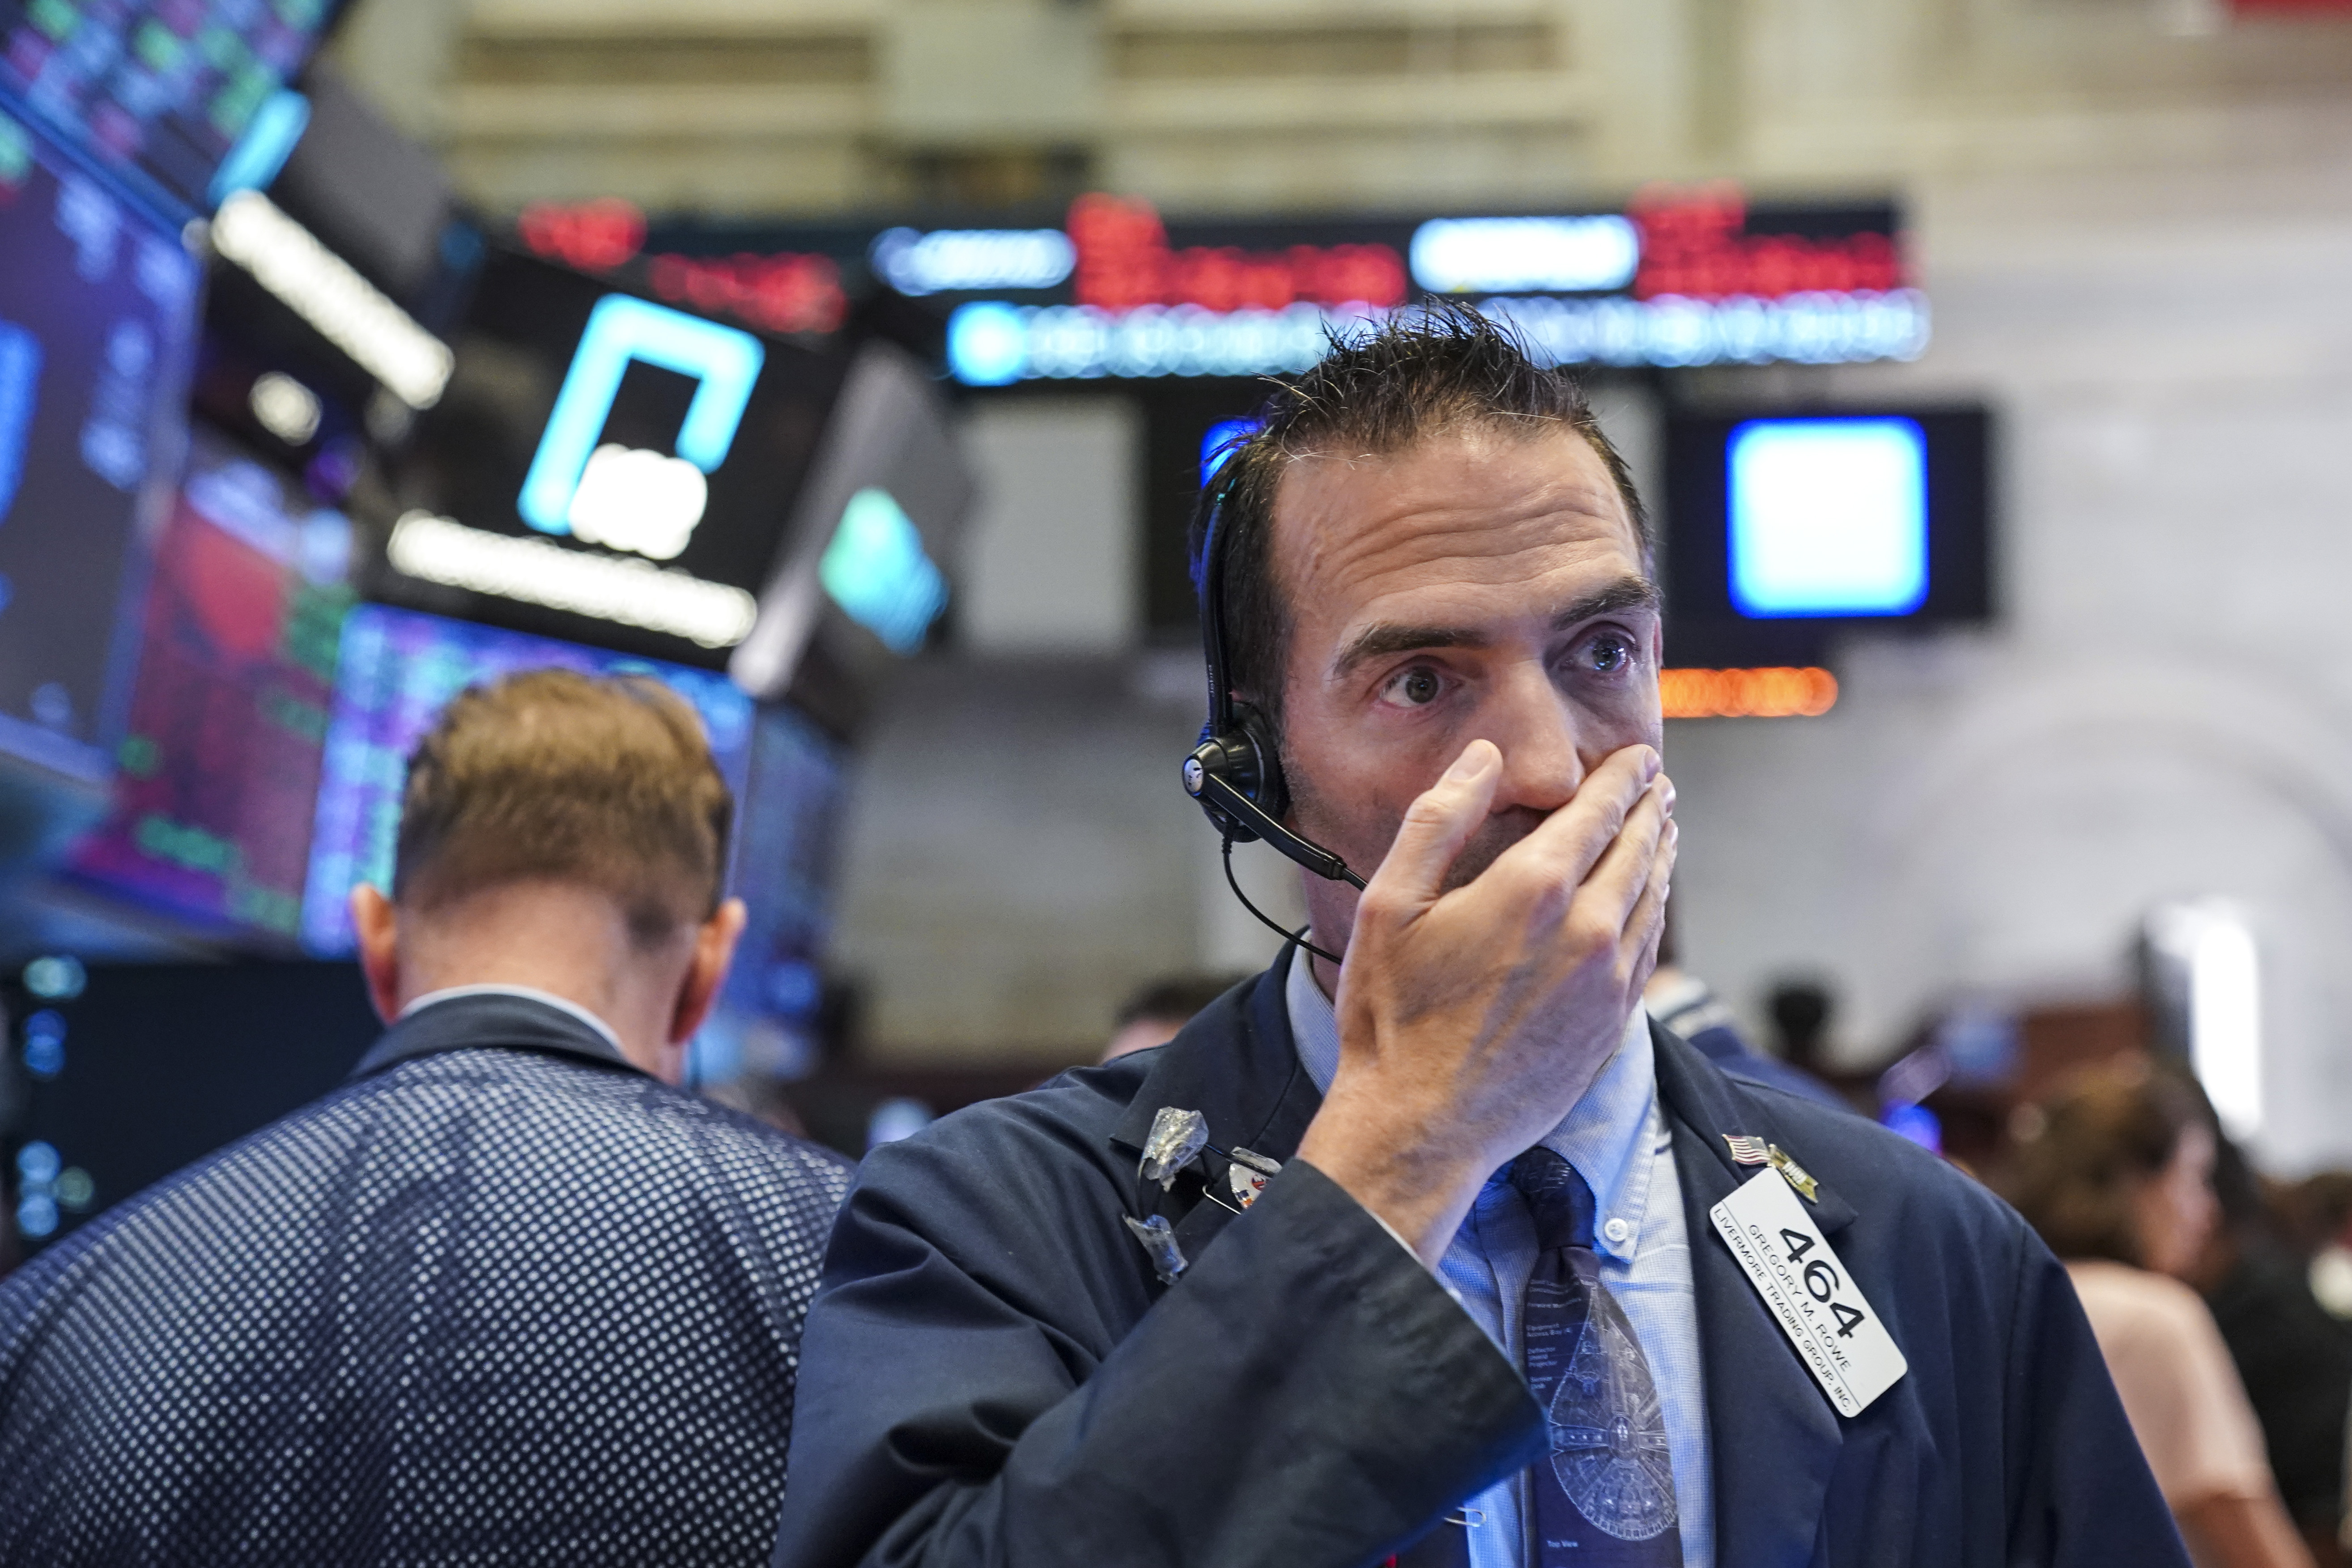 A trader on the stock exchange floor with his hand over his mouth.